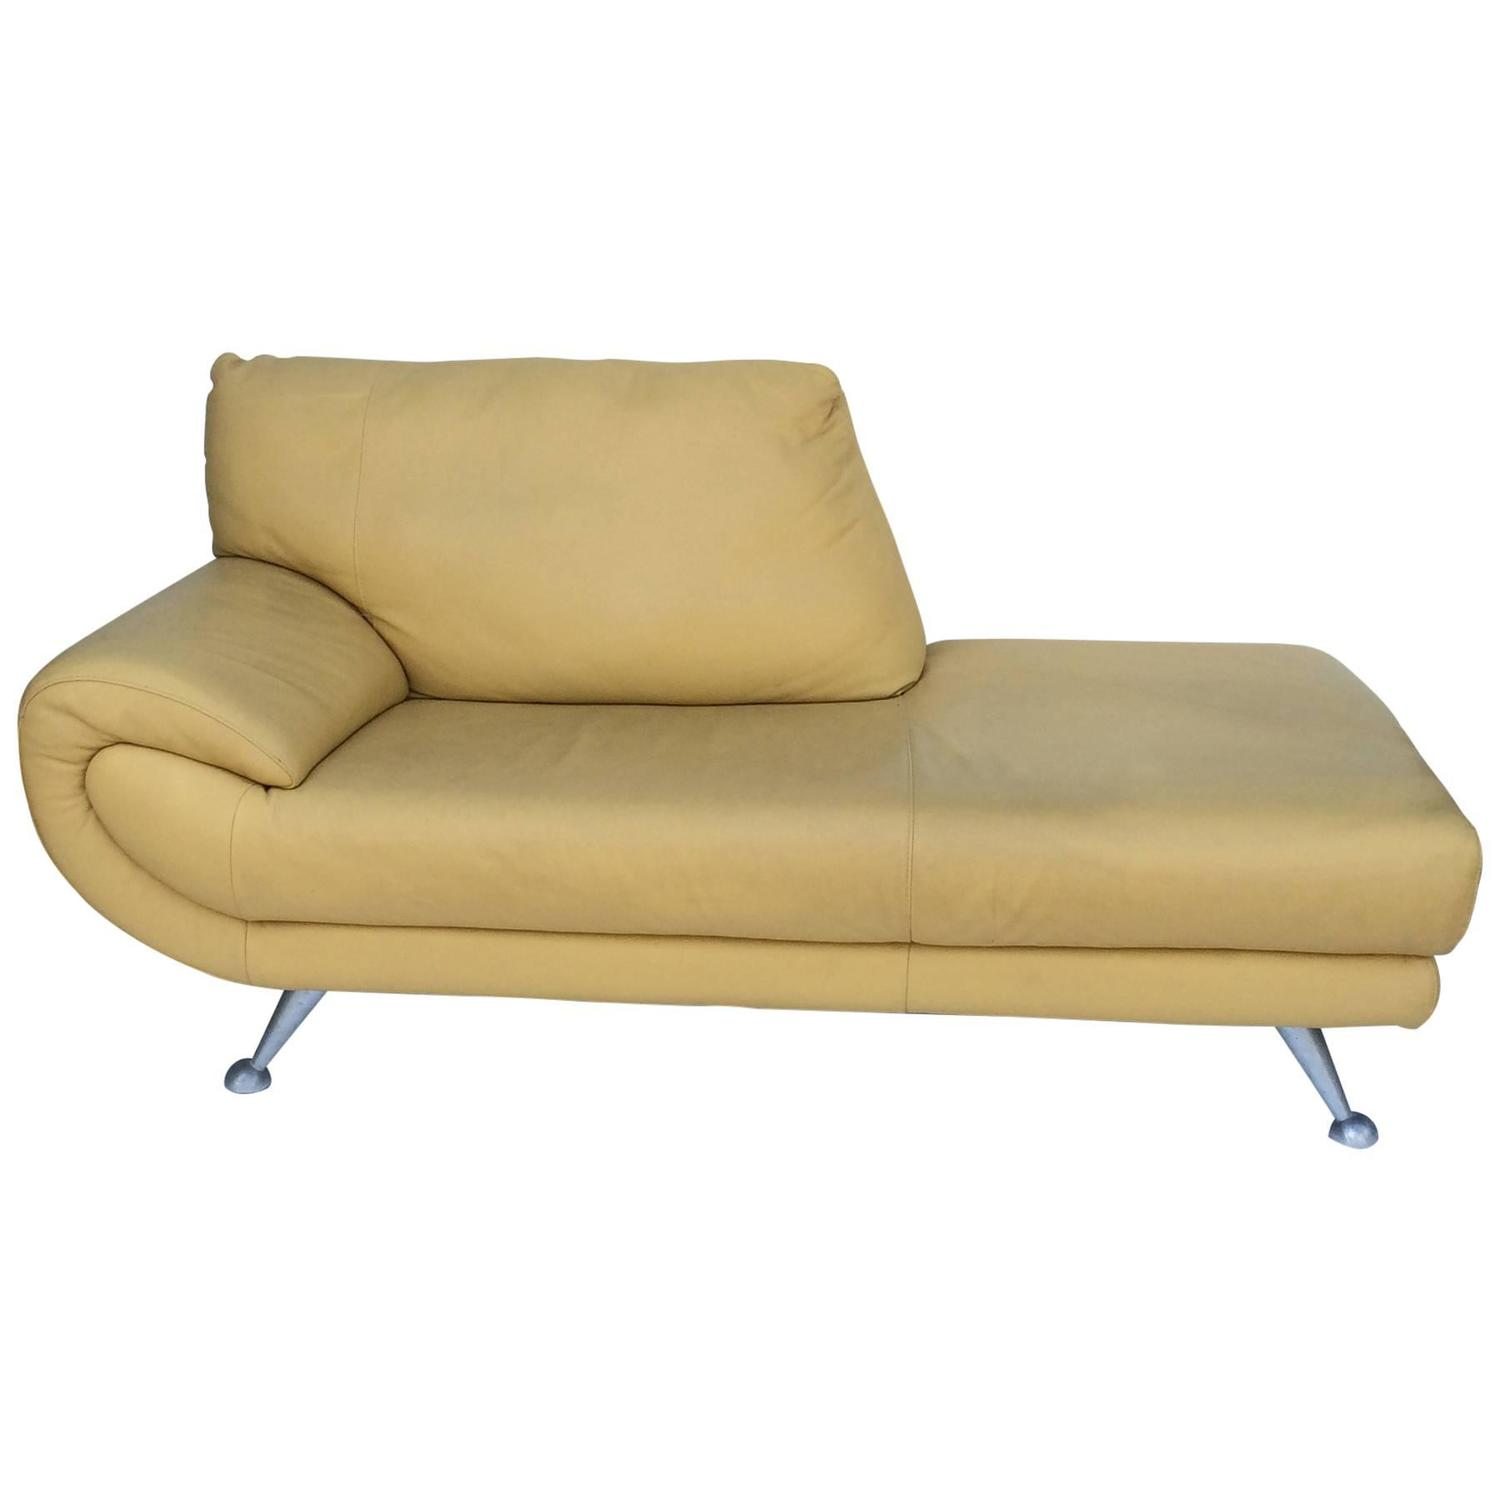 Nicoletti leather chaise lounge for sale at 1stdibs for Chaise leather lounges